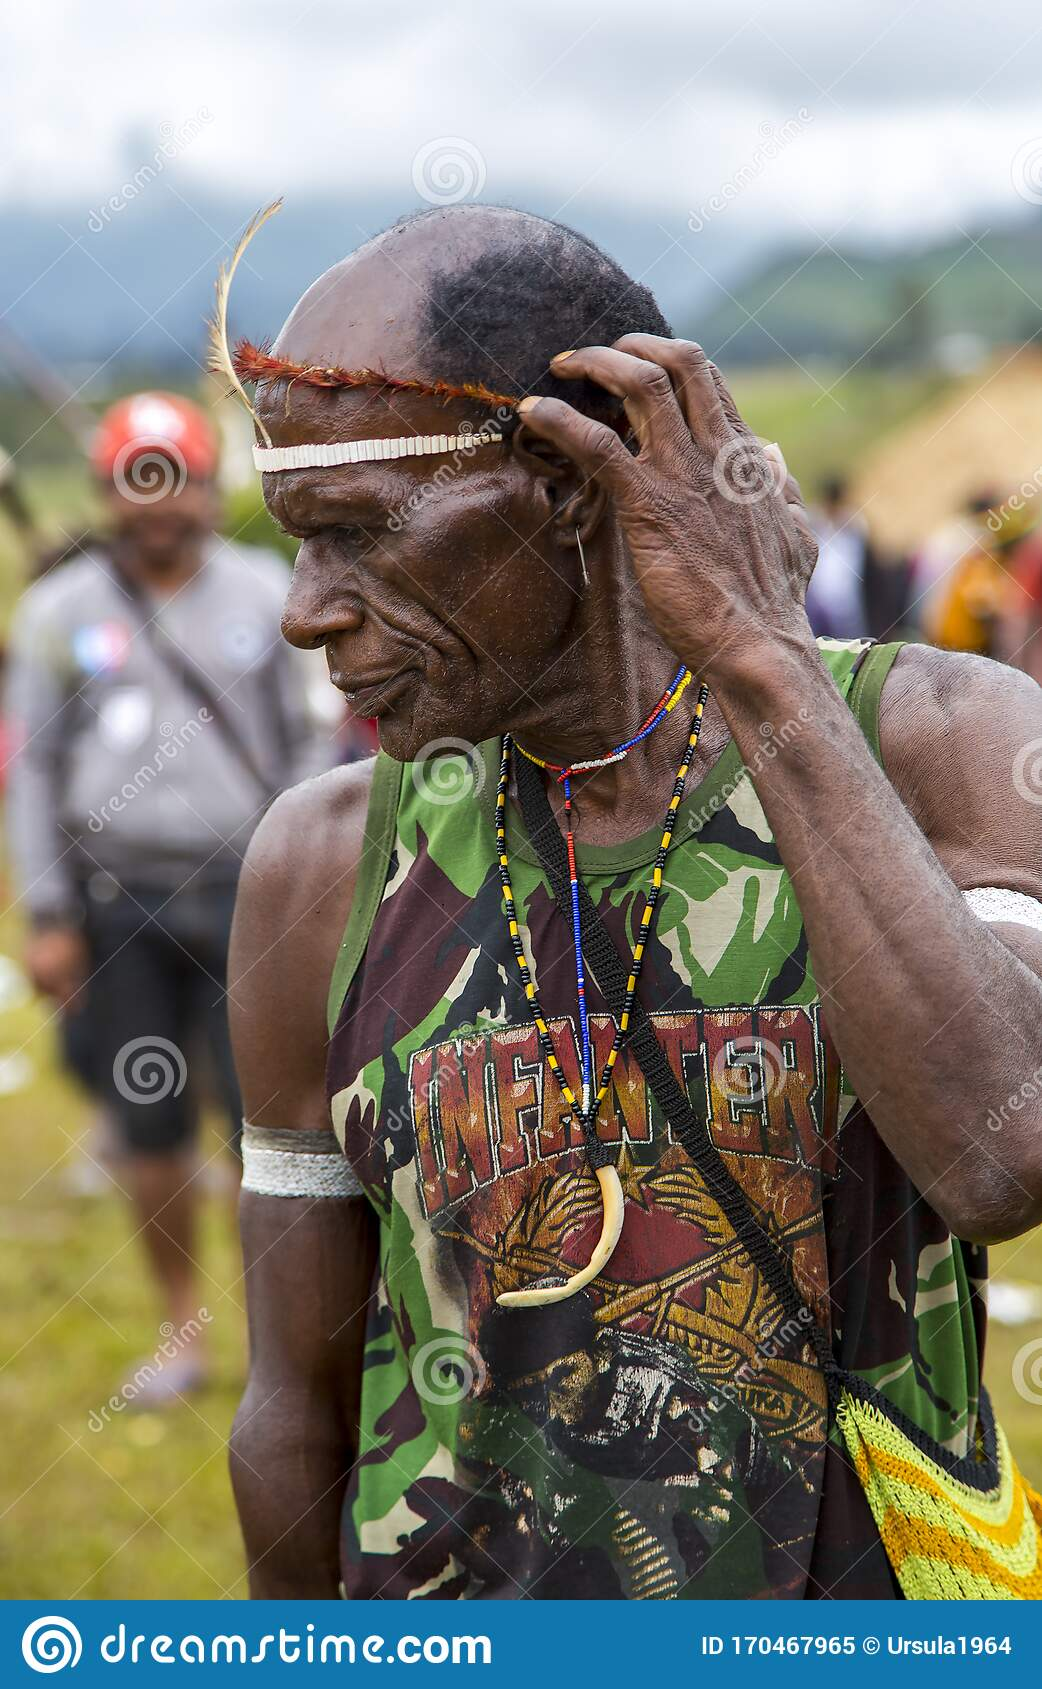 Old man in Papua New Guinea - Stock Editorial Photo